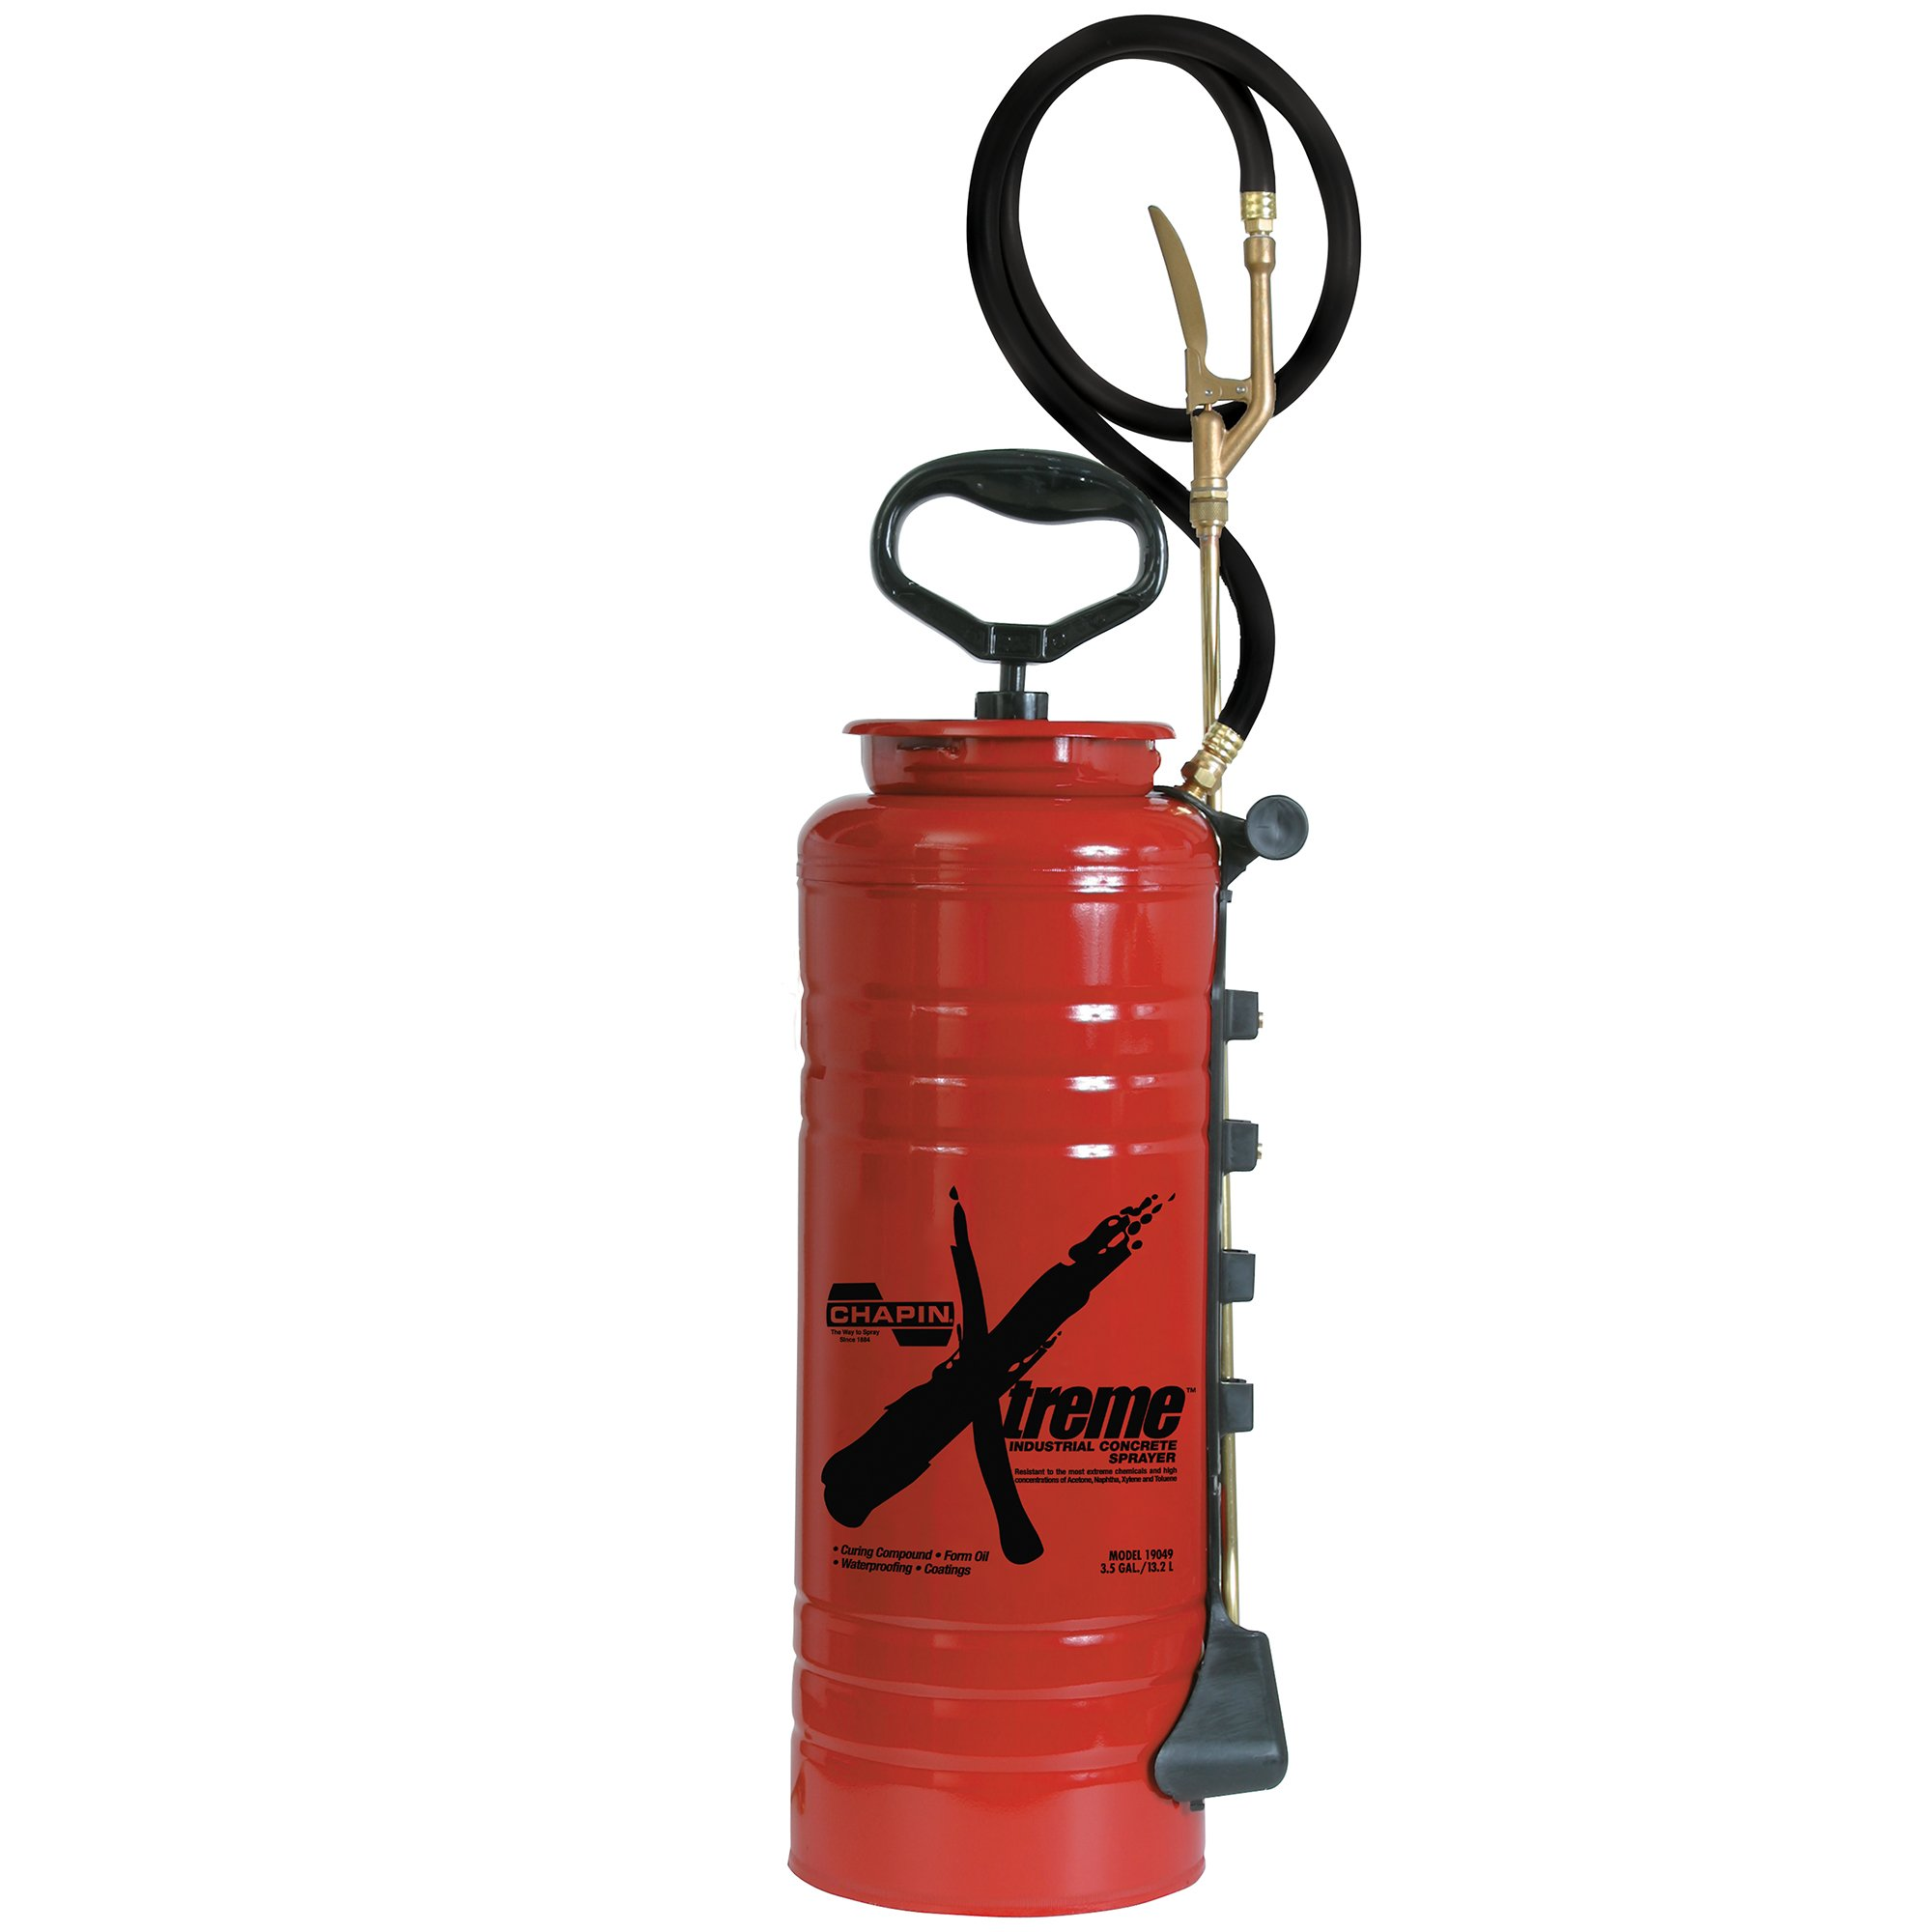 Chapin 19049 Xtreme 3.5 Gallon Industrial Concrete Open Head Sprayer For Curing Compounds, Form Oils, Waterproofing and Coatings